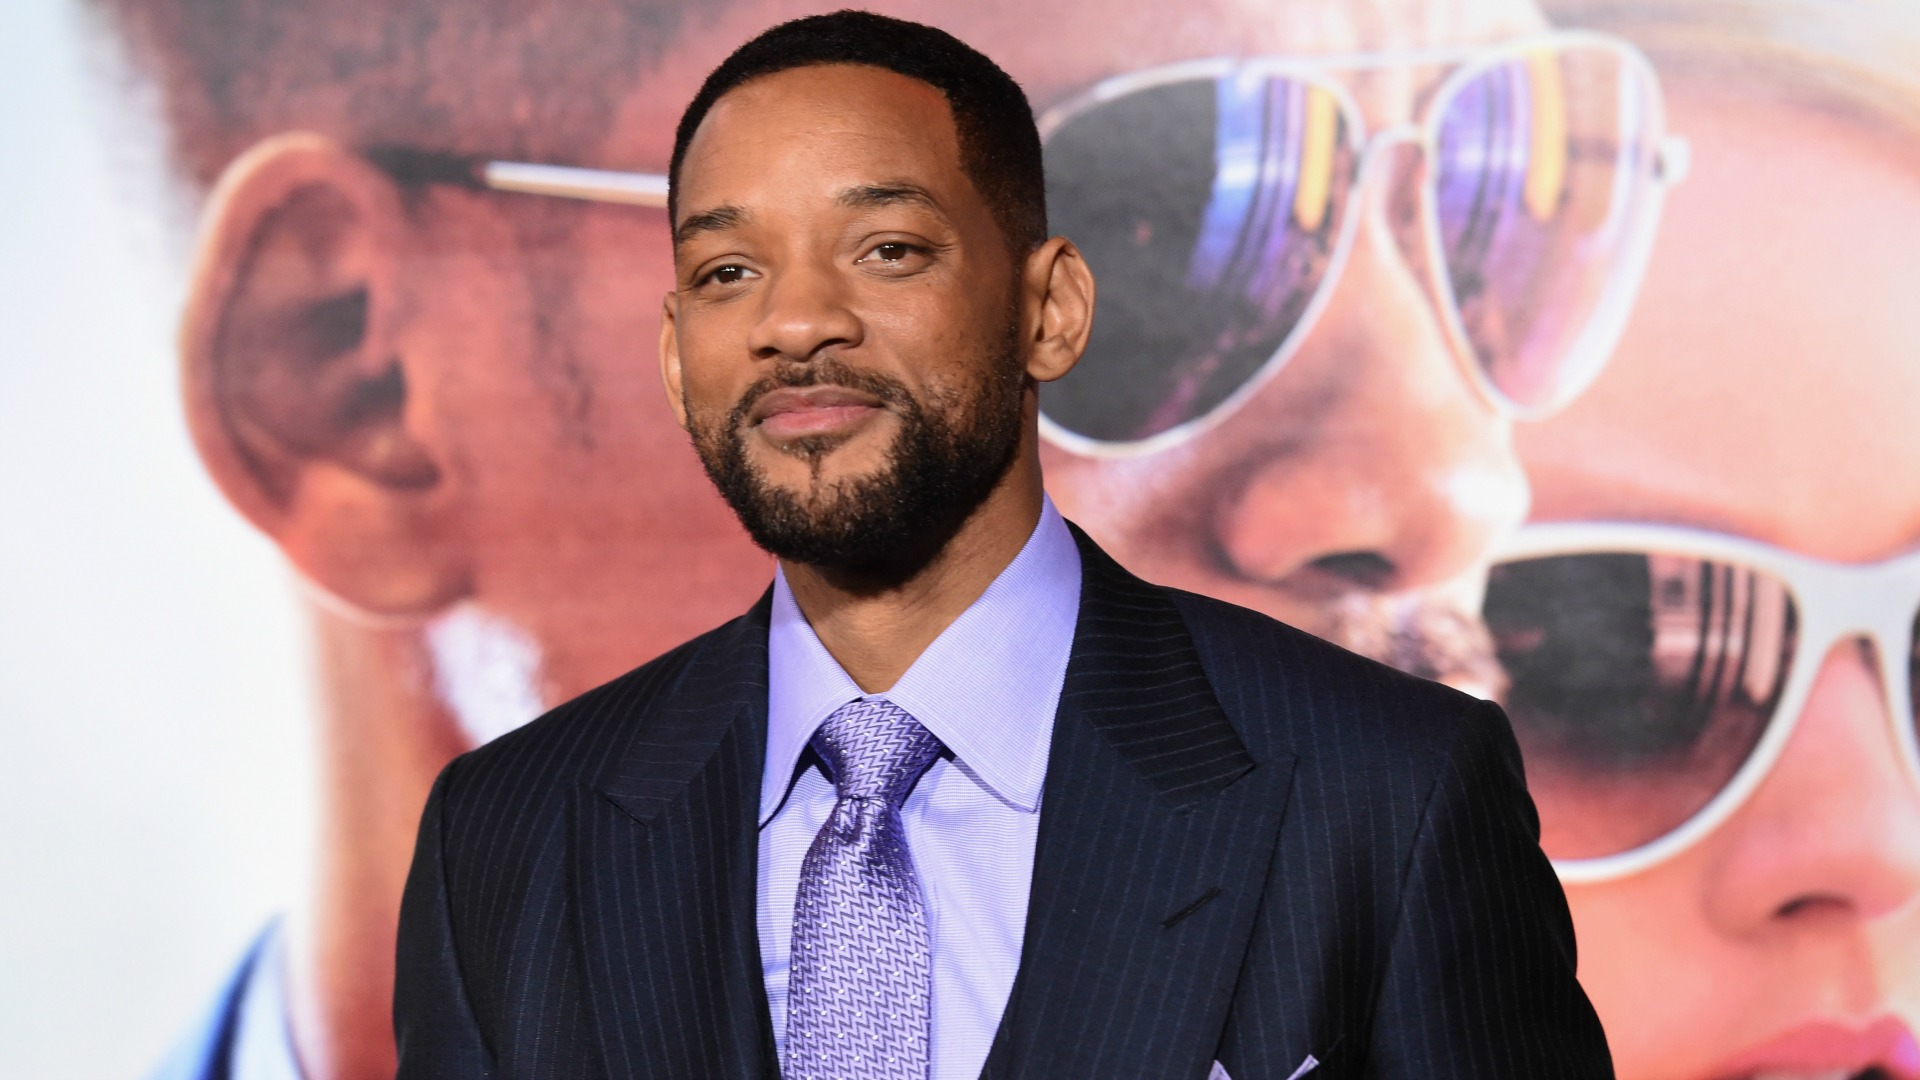 Will Smith, l'attore rivela: